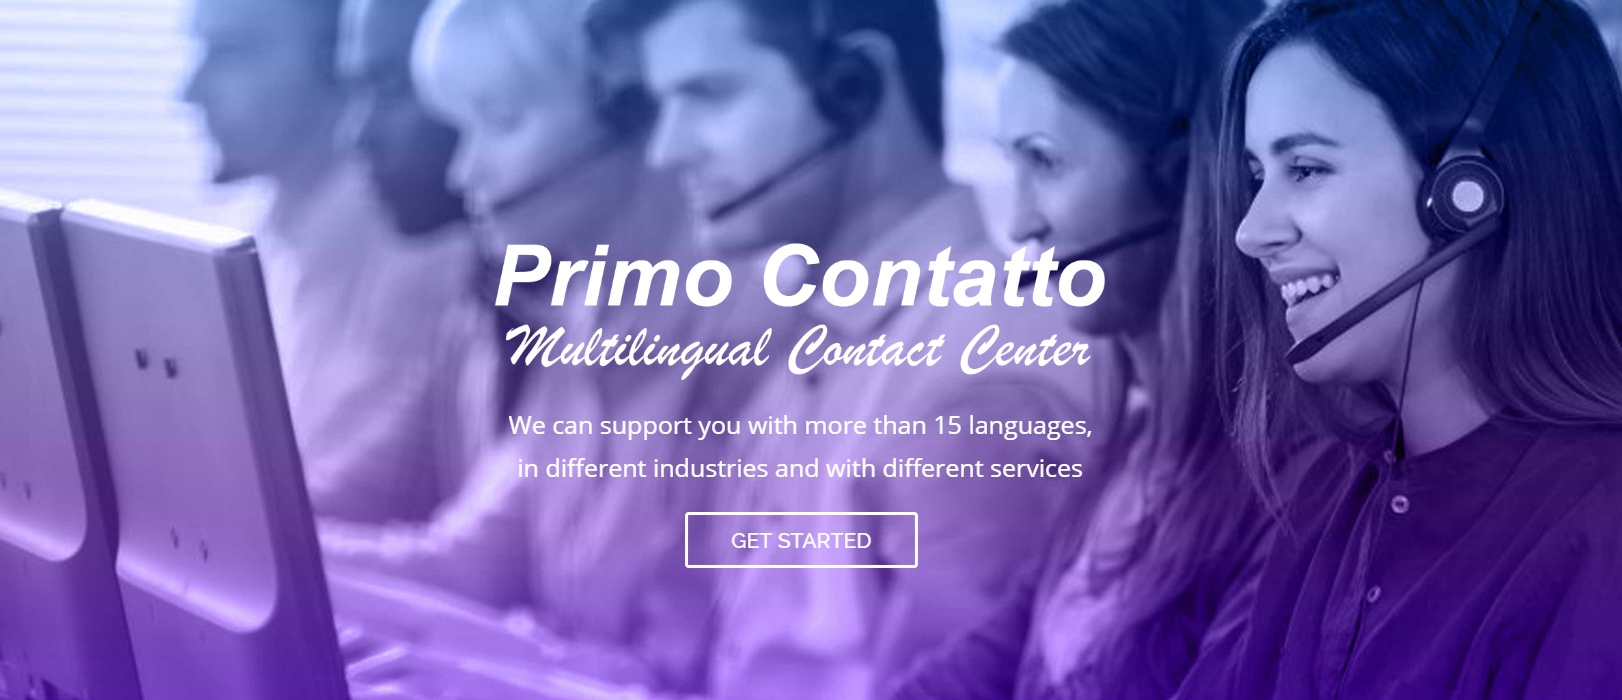 primocontatto-multilingual-outsourcing-center-service-inbound-calls-icon